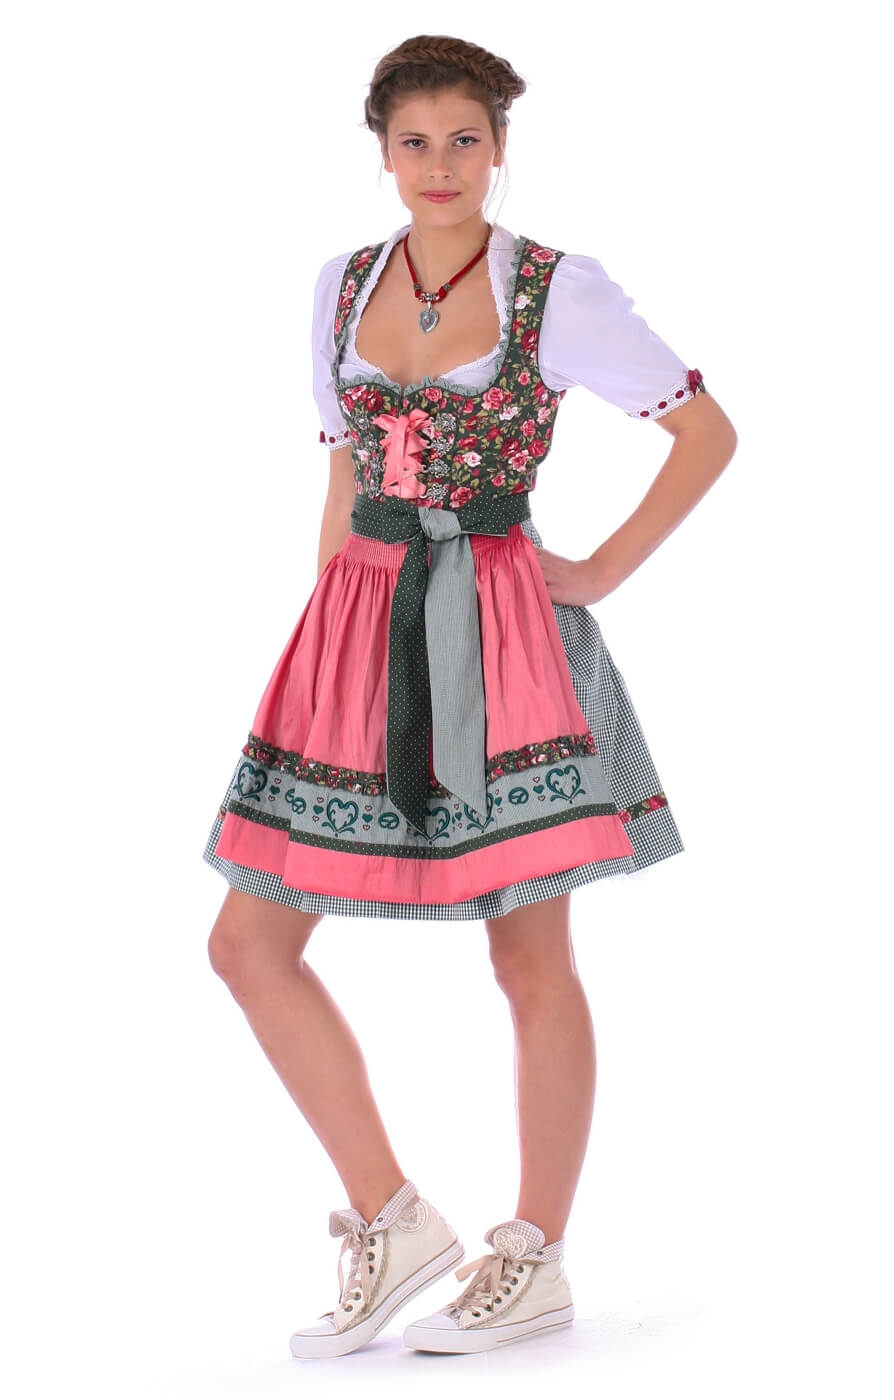 bavarian styles for hot summer days oktoberfest dirndl. Black Bedroom Furniture Sets. Home Design Ideas